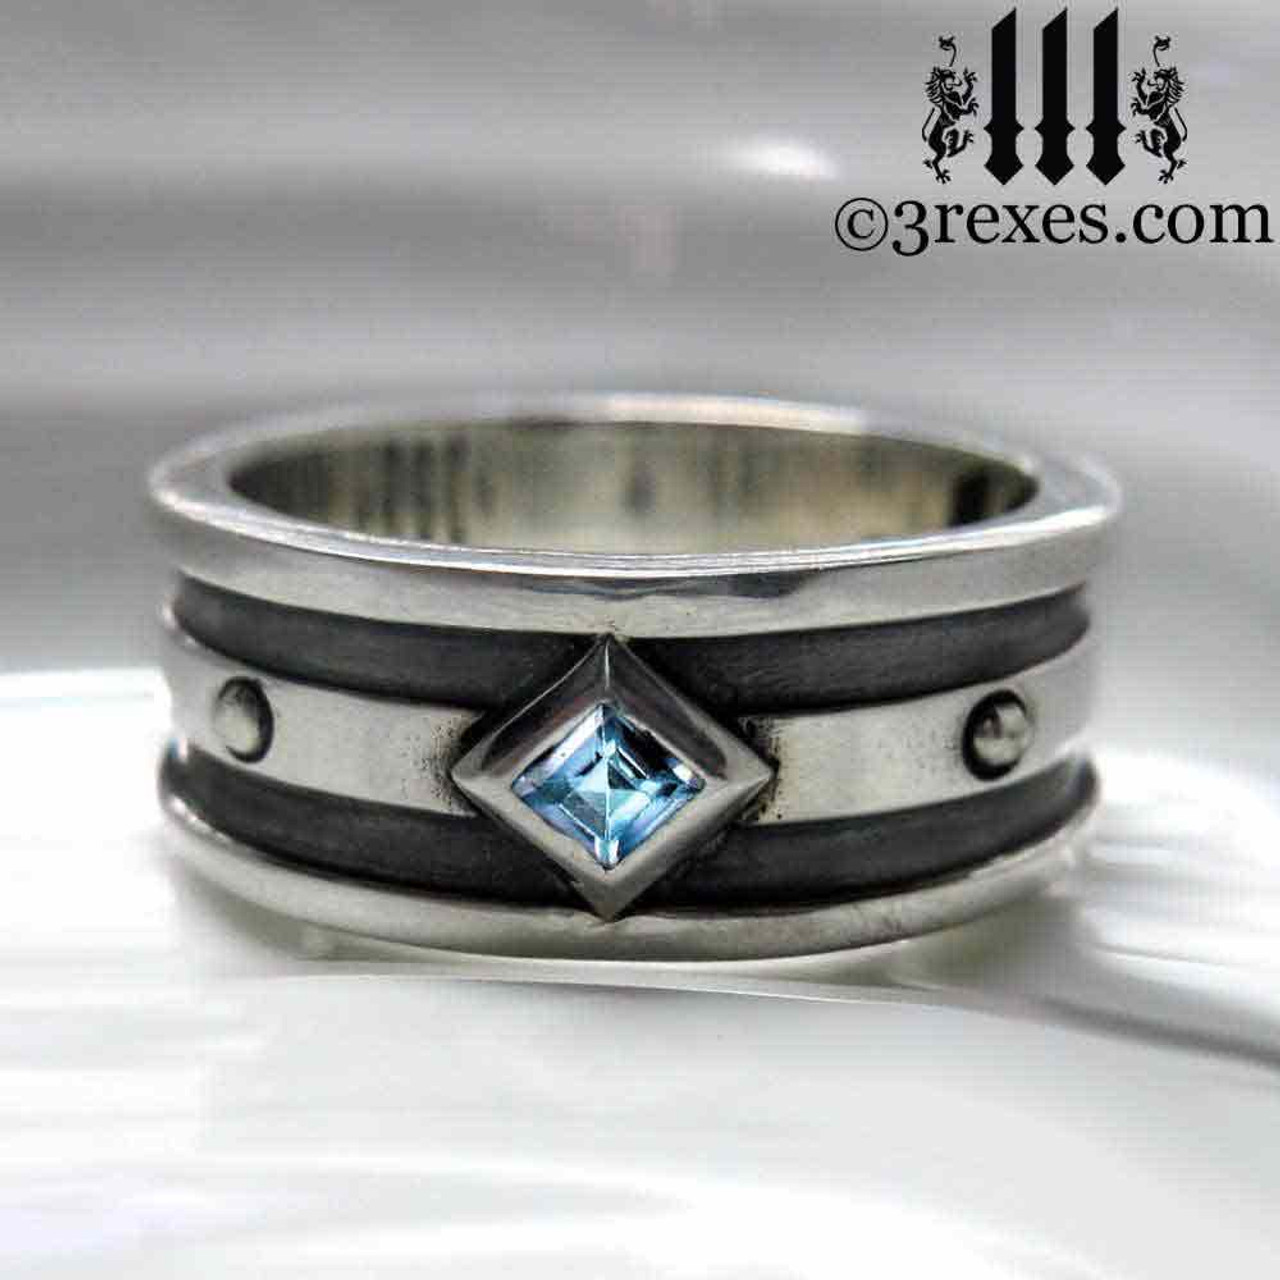 Silver Gothic Wedding Ring With Blue Topaz Stone Mens Medieval Band Royal Jewelry: Meval Royal Wedding Rings At Websimilar.org